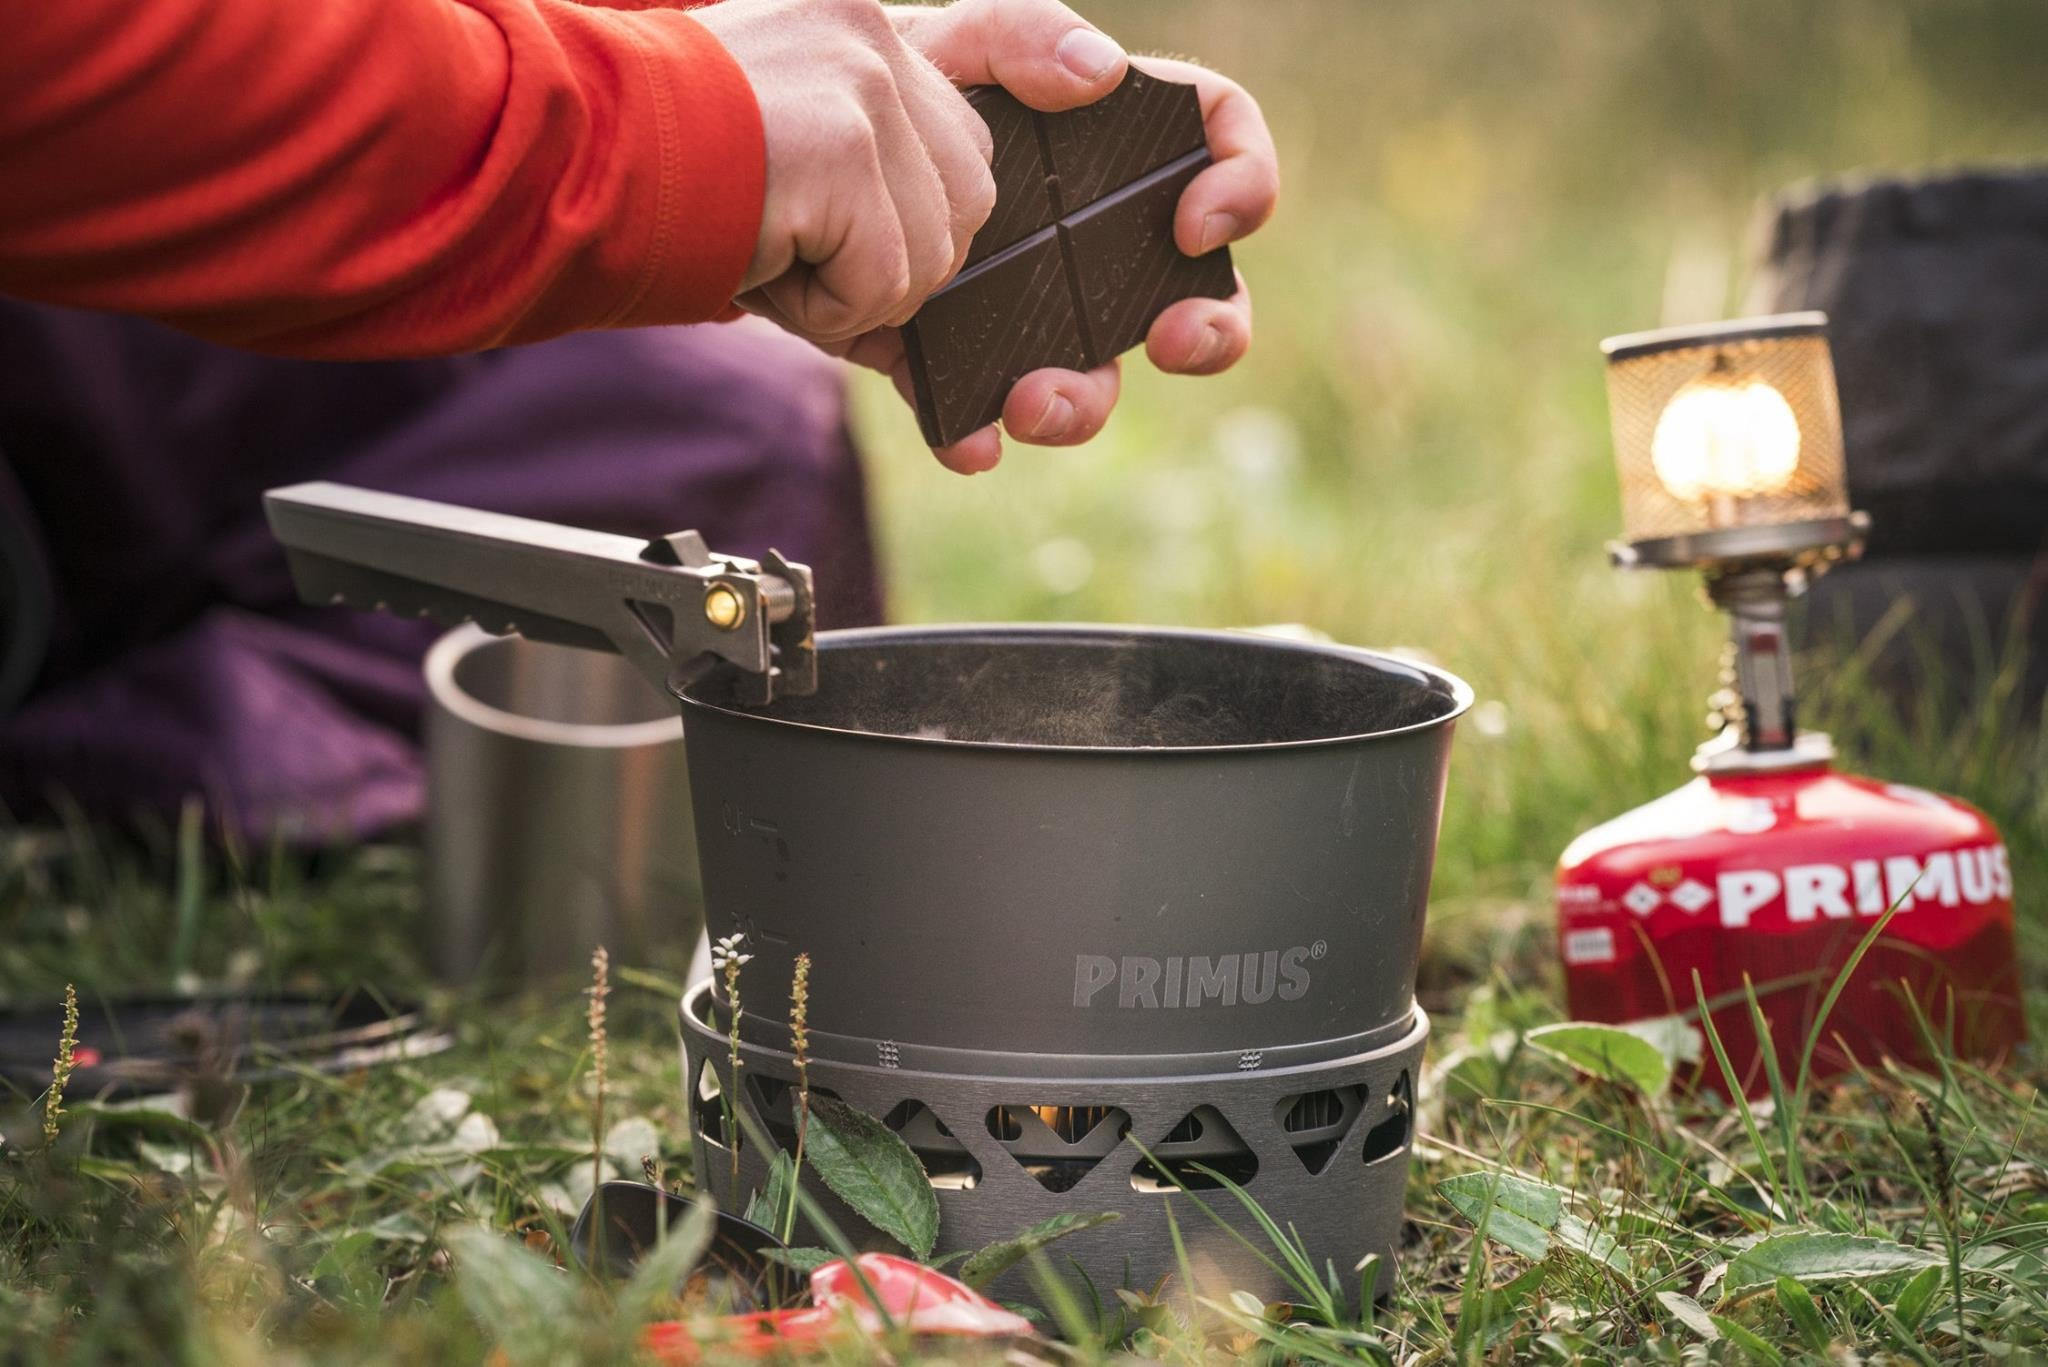 a hand dropping chocolate into a pot over a primus portable stove